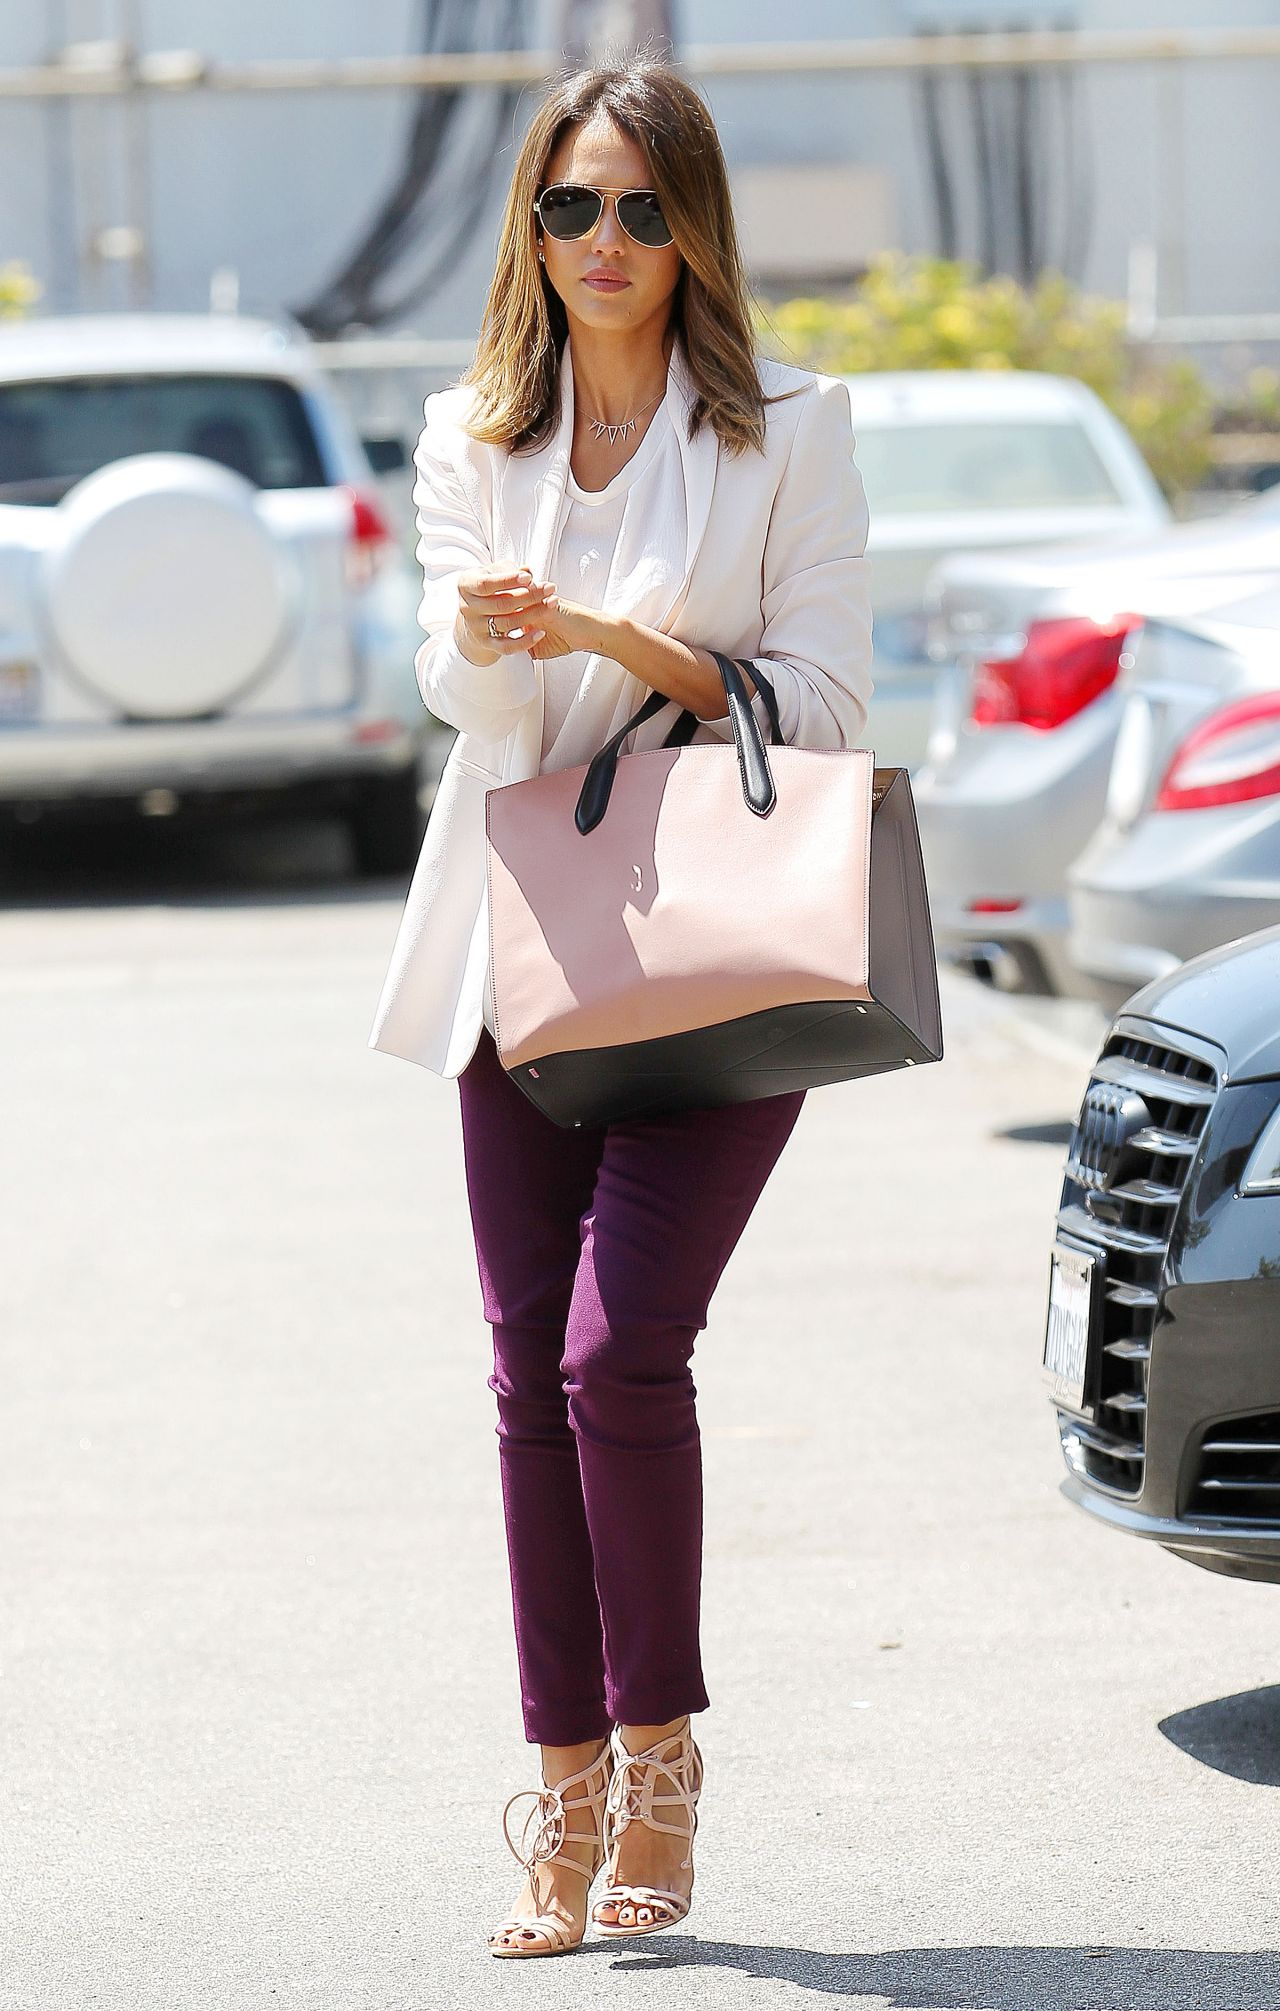 Business Casual Outfit Damen Jessica Alba Casual Style - Heads To The Office In Santa